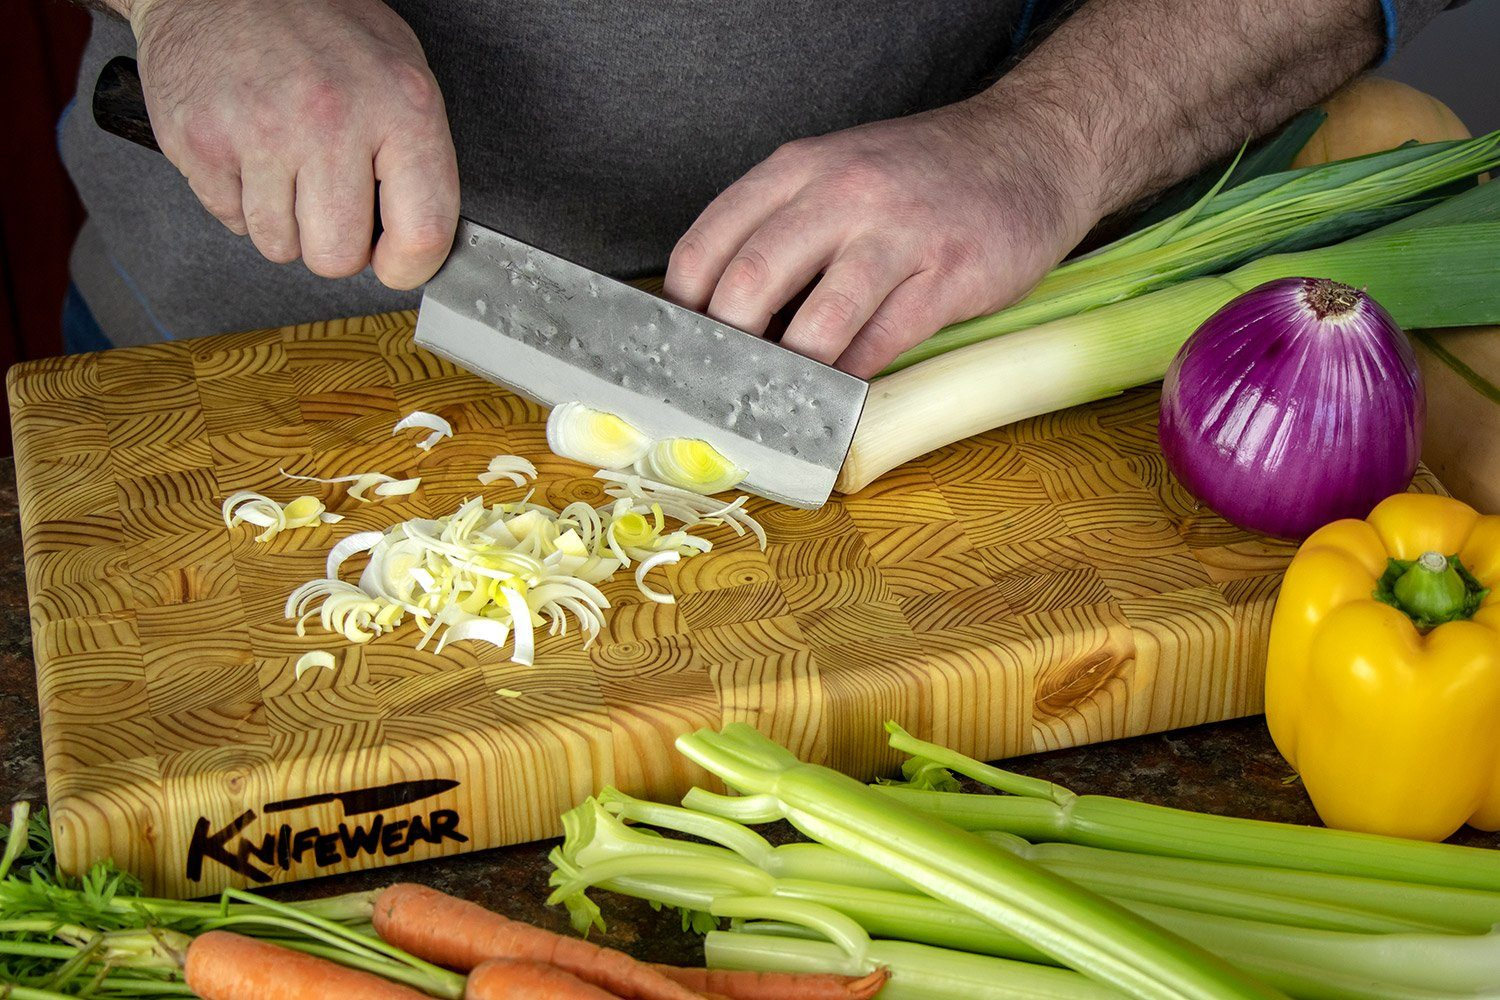 Knife Care: Why Everyone Needs a Larchwood Cutting Board